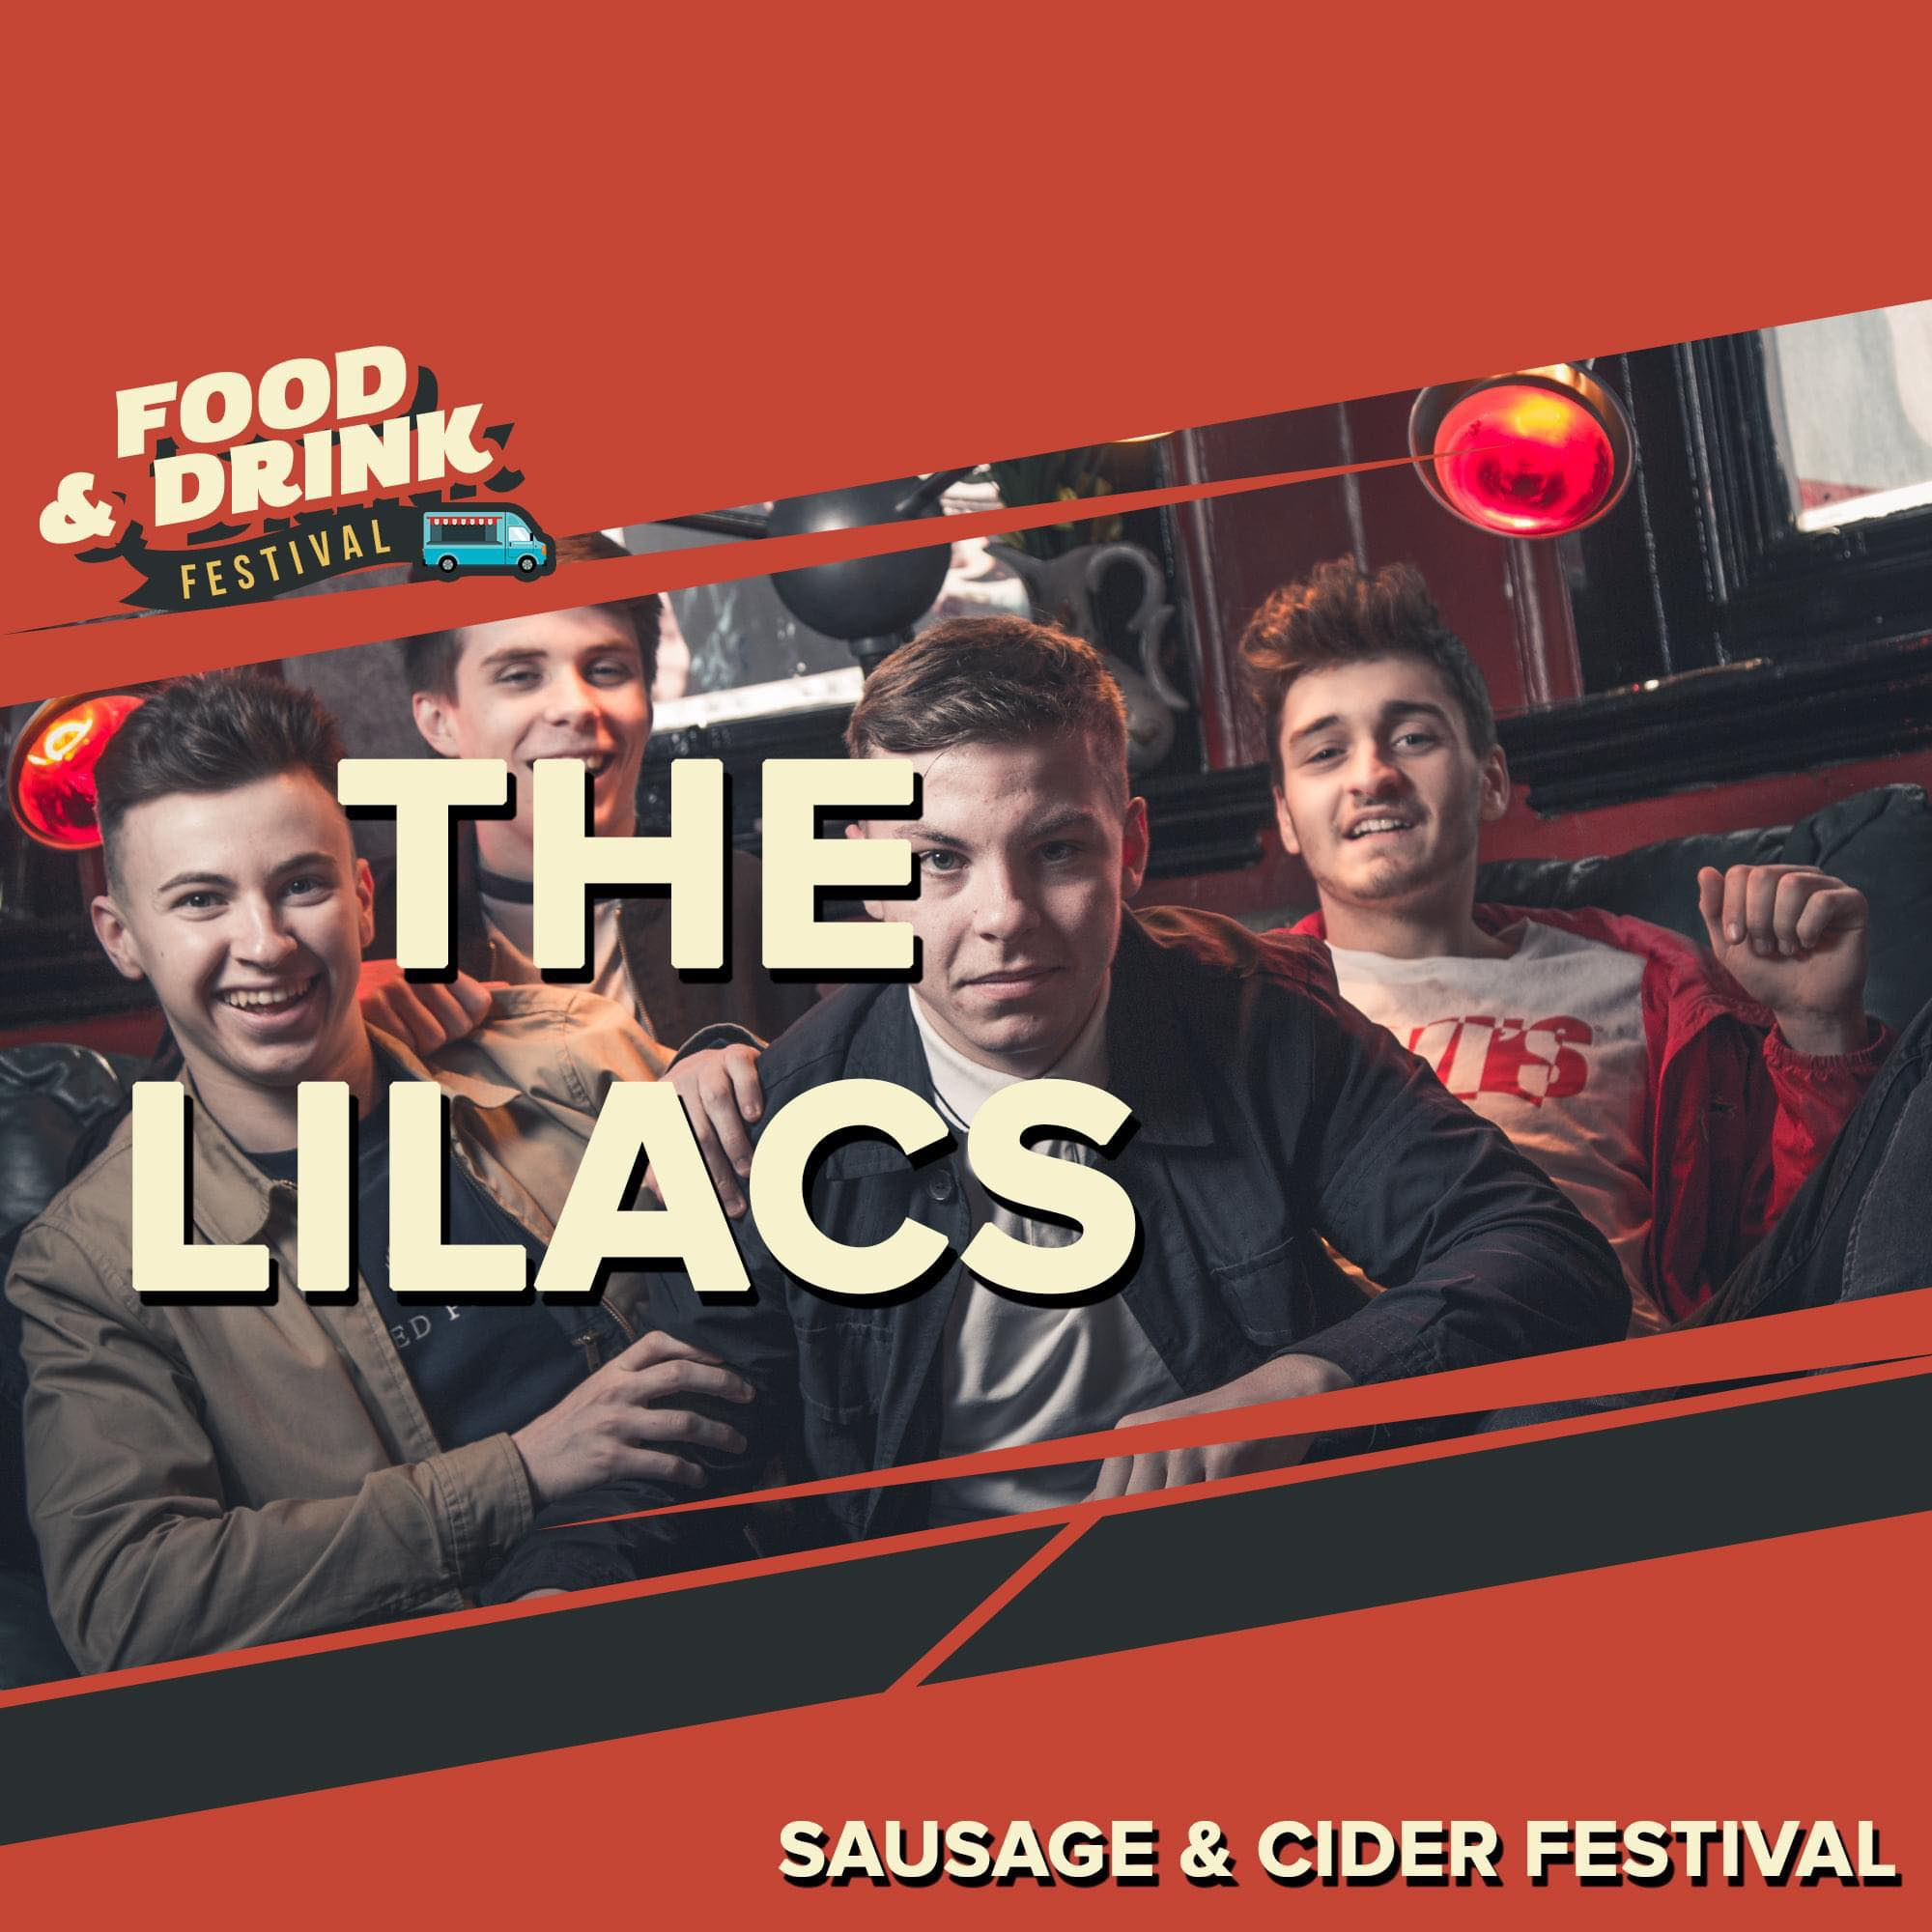 The Sausage and Cider Festival will take place at Victoria Park in Southport on Friday, 25th June, featuring The Lilacs